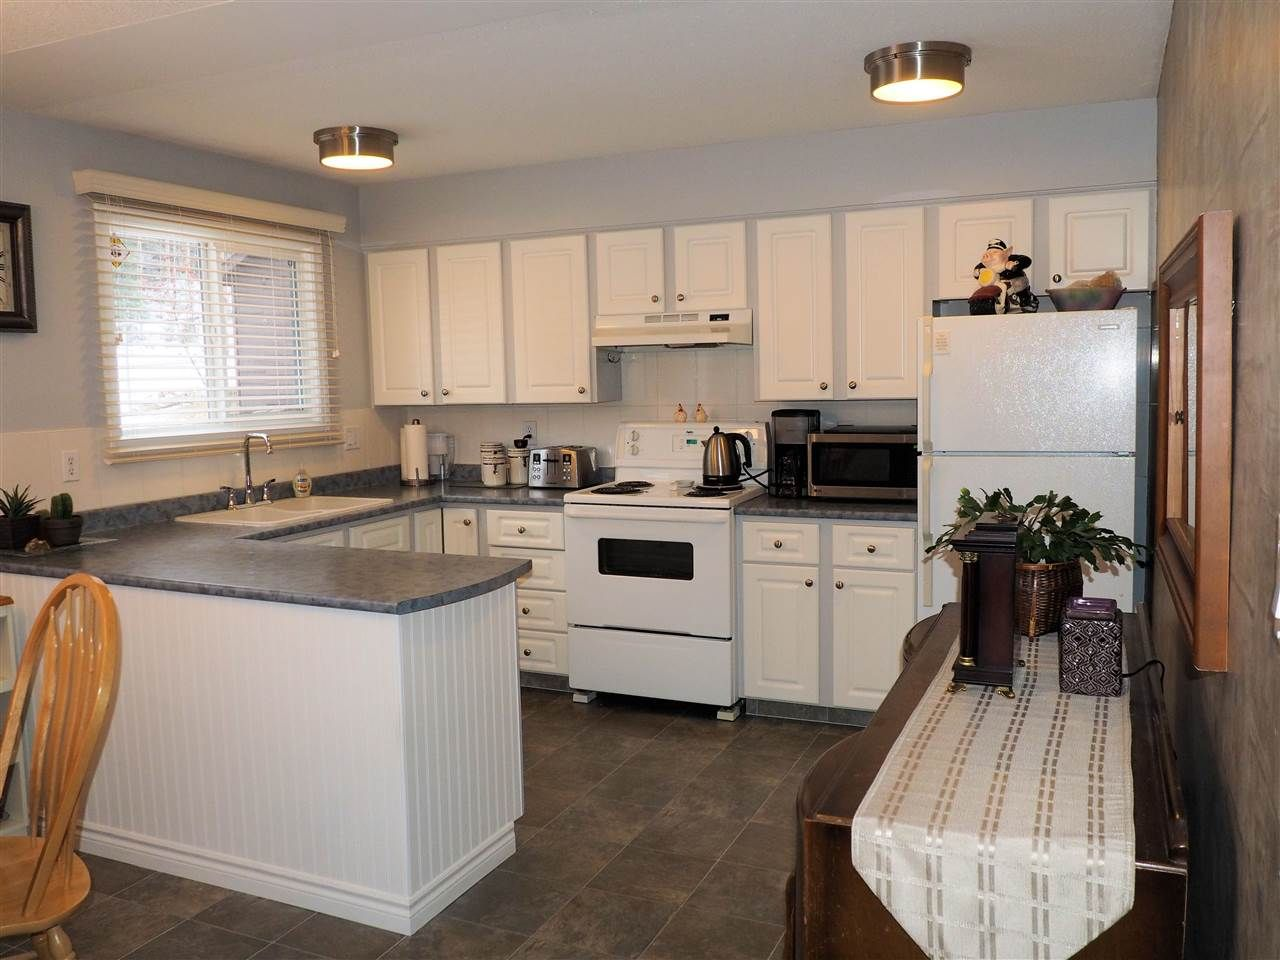 Photo 4: Photos: 4645 ROBSON Avenue in Prince George: Foothills House for sale (PG City West (Zone 71))  : MLS®# R2143048